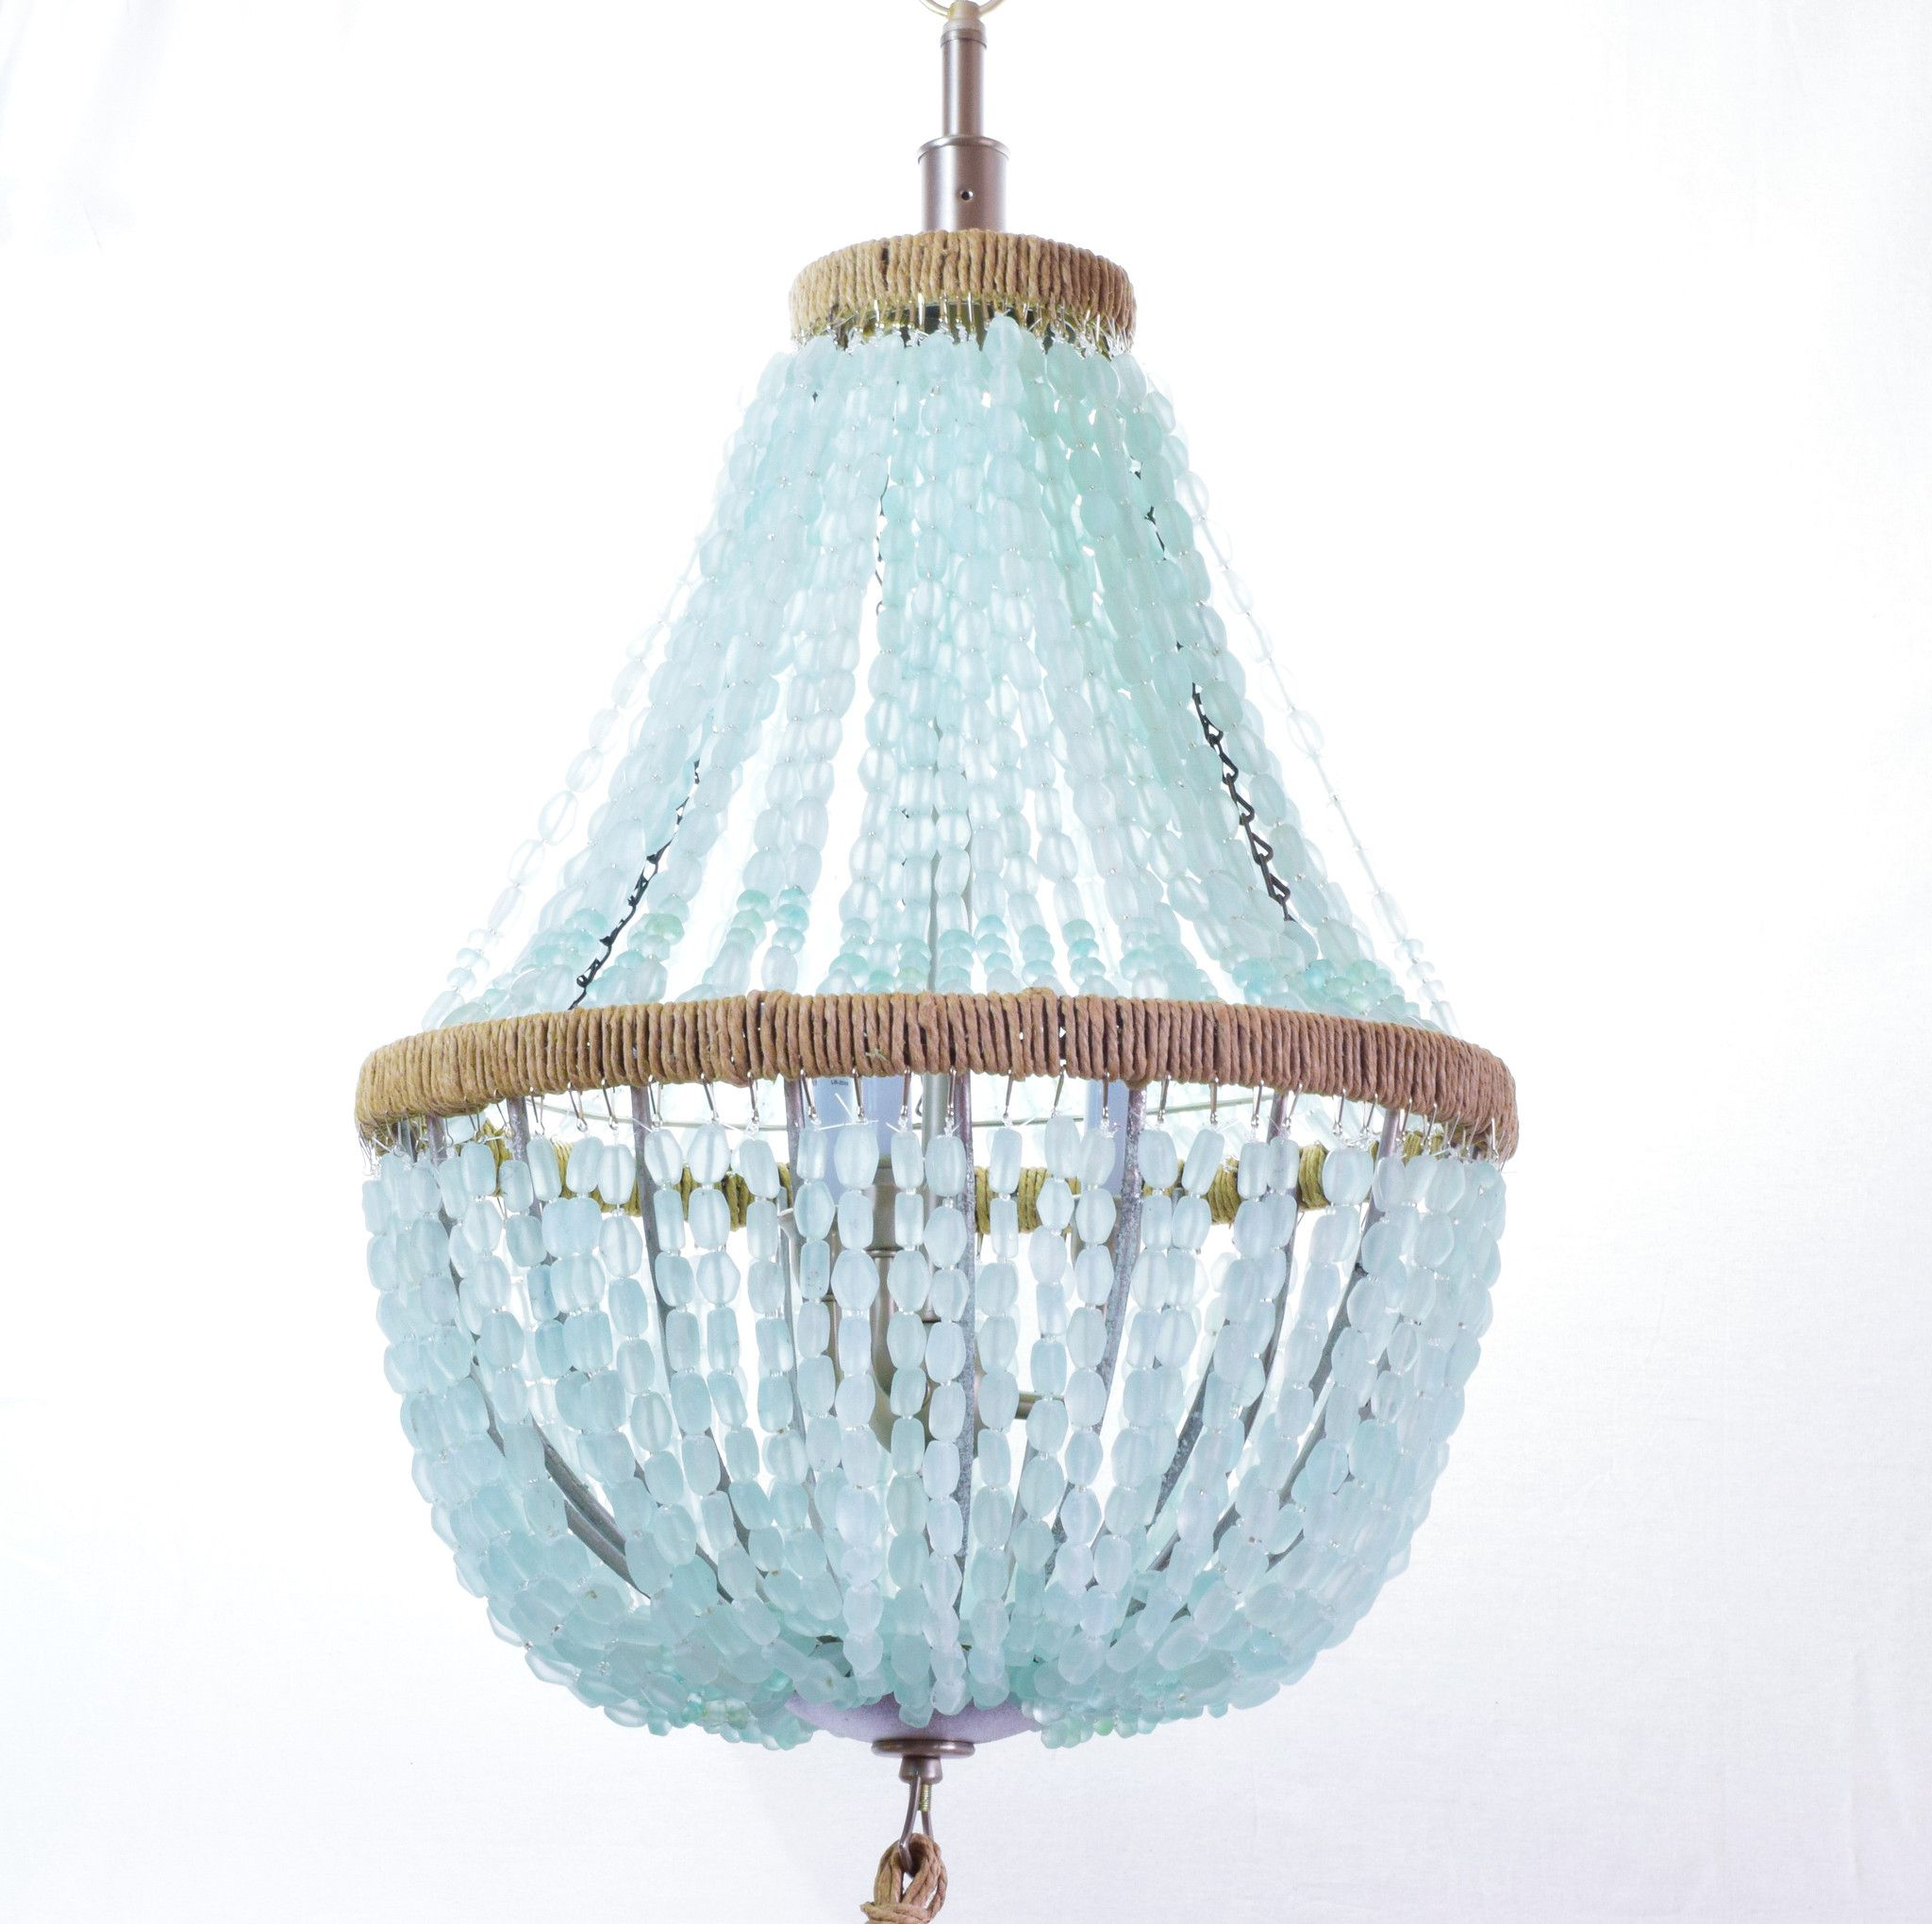 Celeste Sea Glass Chandelier Bring A Calm Energy And Richness Into Your Home Décor With The Inspired By French Empire